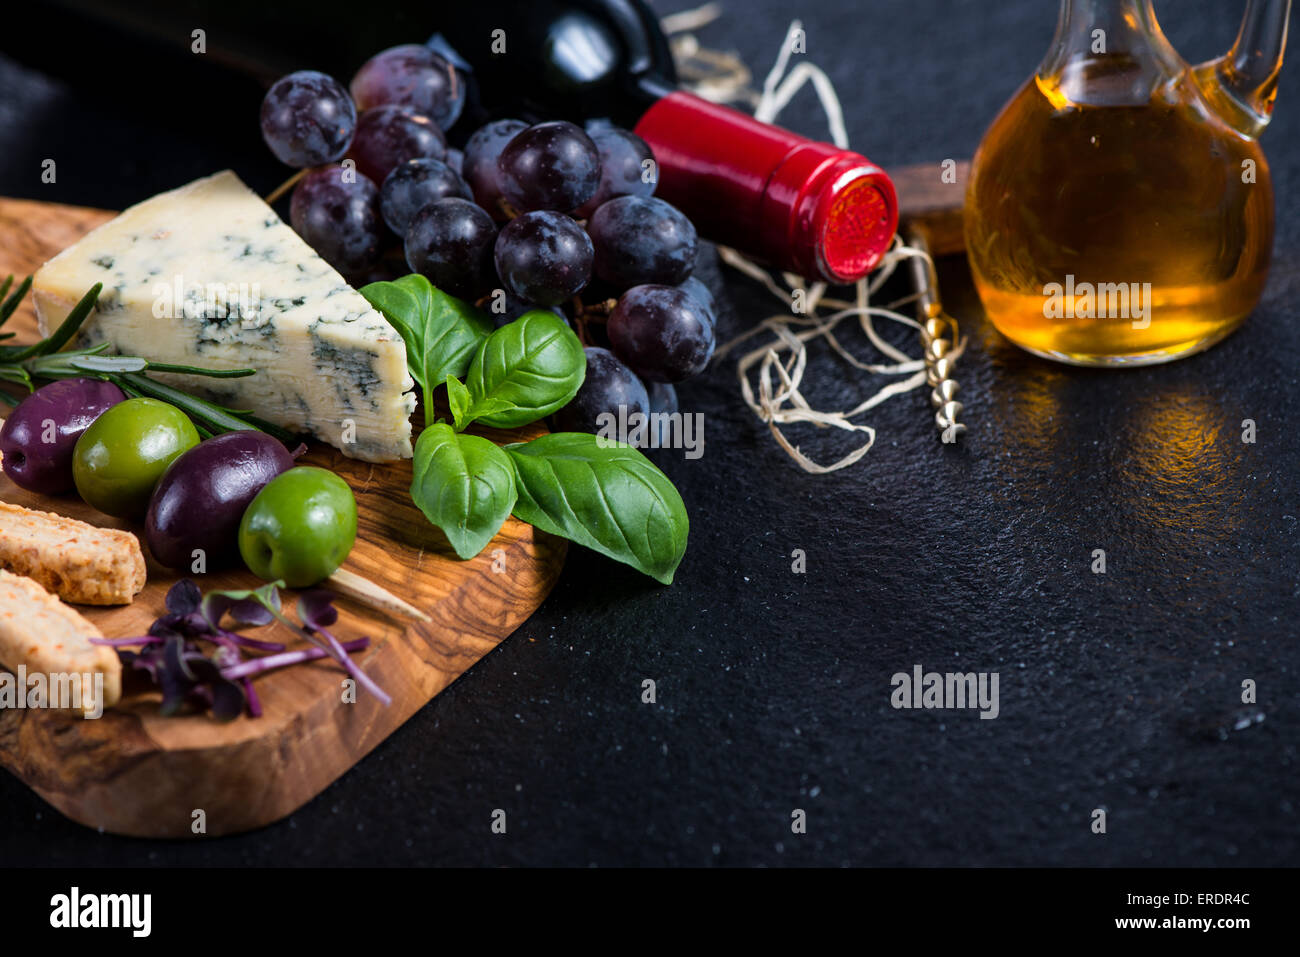 Tapas board with cheese,olives,grapes and red wine,food border background - Stock Image